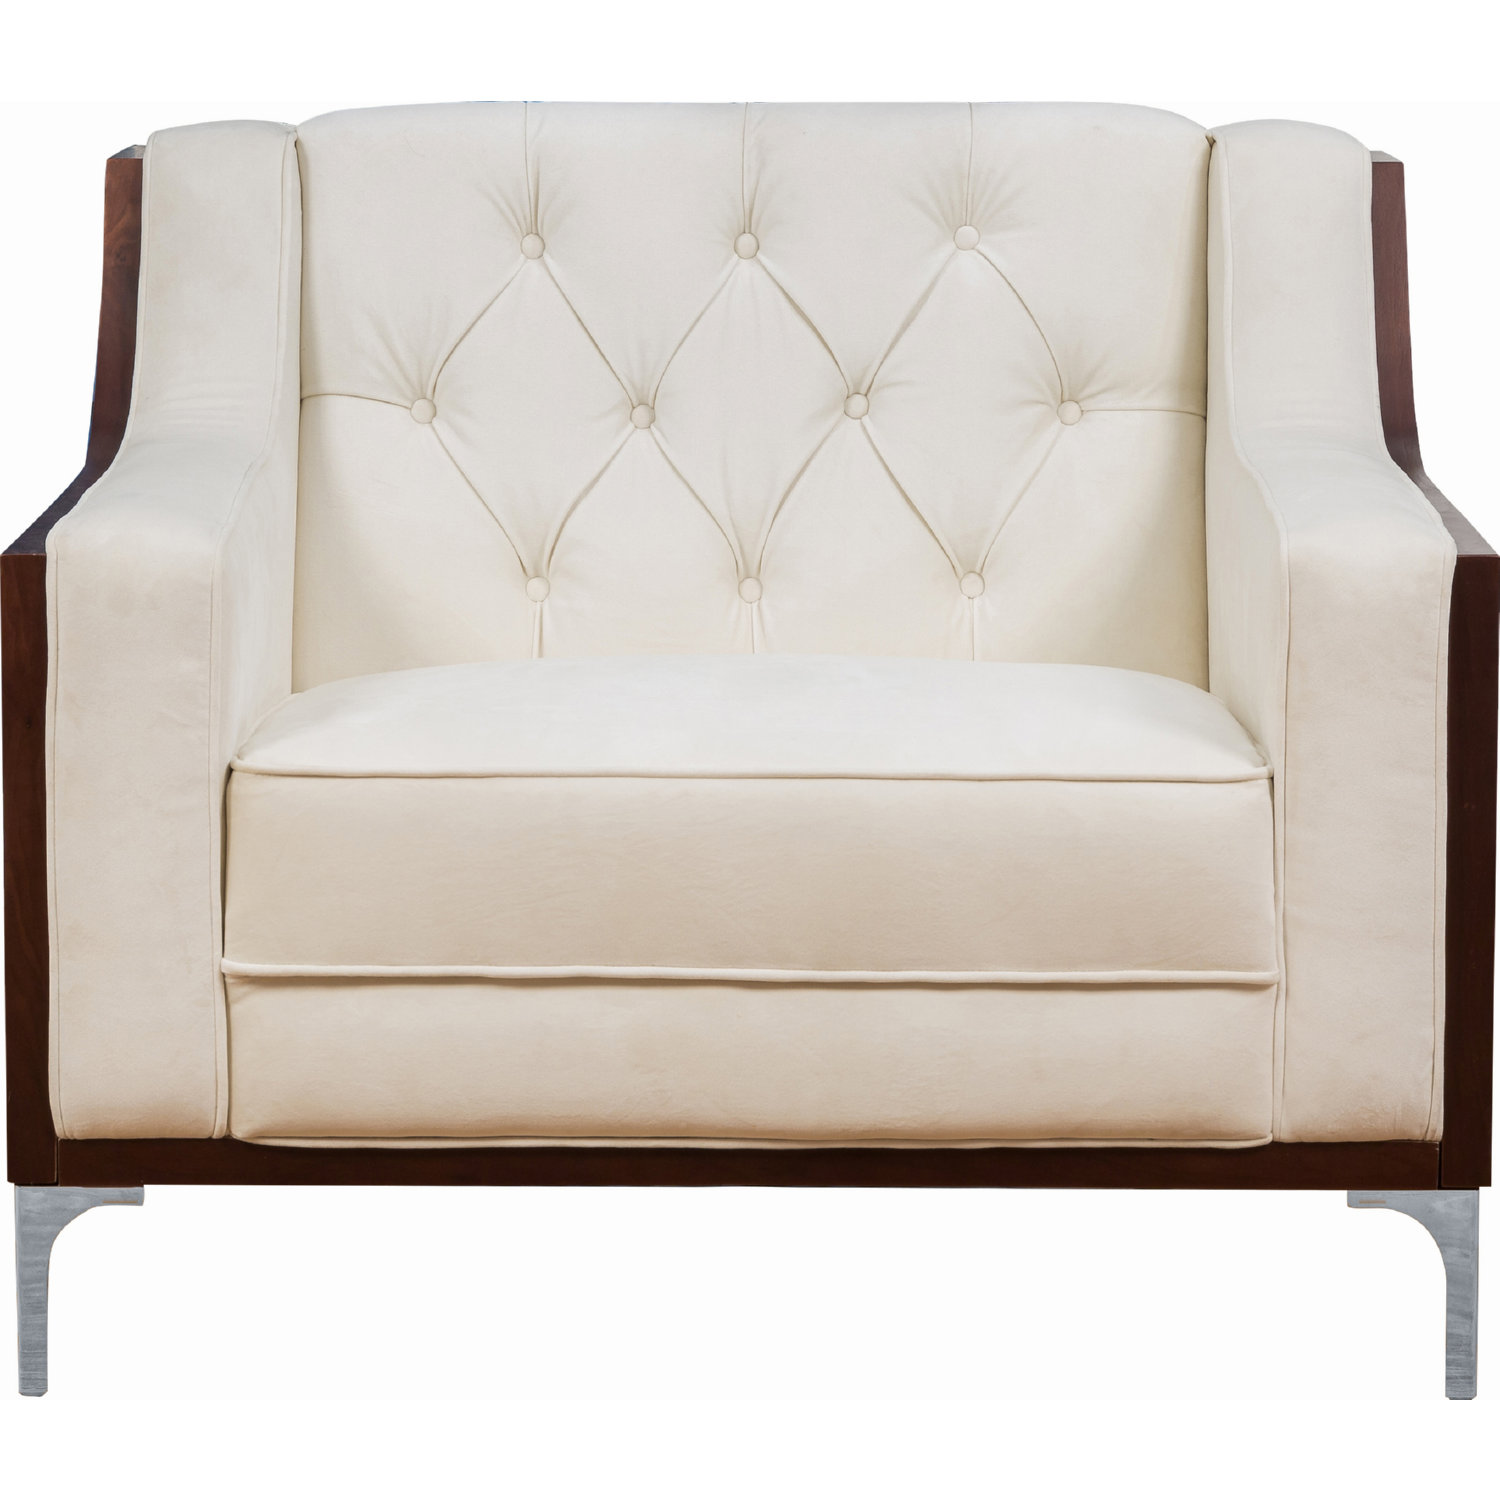 Phenomenal Clark Club Chair In Tufted Cream White Velvet On Walnut Finish Frame By Chic Home Ibusinesslaw Wood Chair Design Ideas Ibusinesslaworg